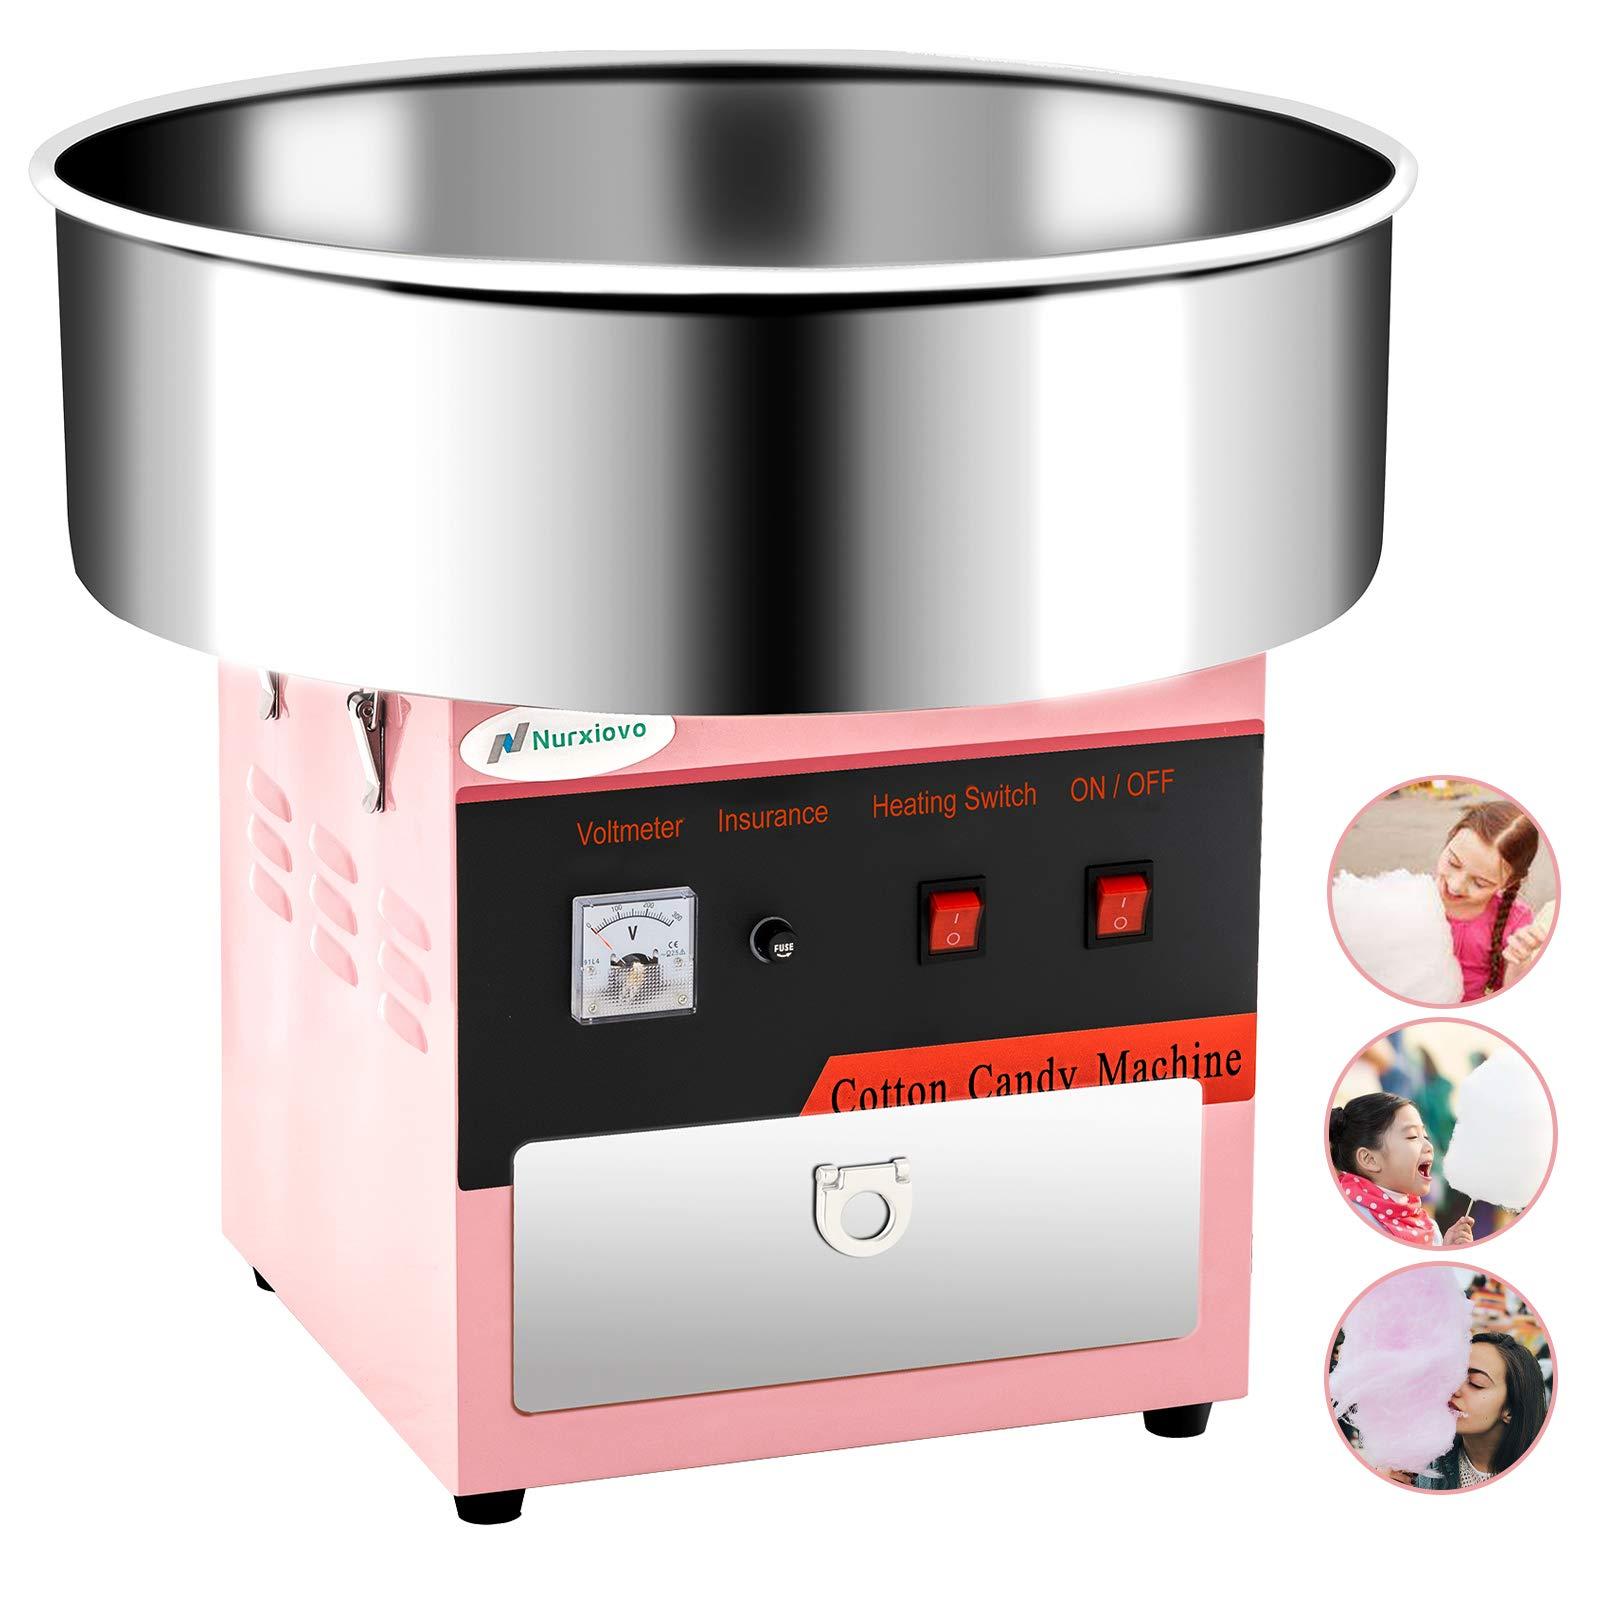 Cotton Candy Machine -Nurxiovo 21 Inch Electric Large Commercial Cotton Candy Maker Stainless Steel Candy Floss Maker Machine with Sugar Scoop and Big Drawer Pink for Various Parties by Nurxiovo